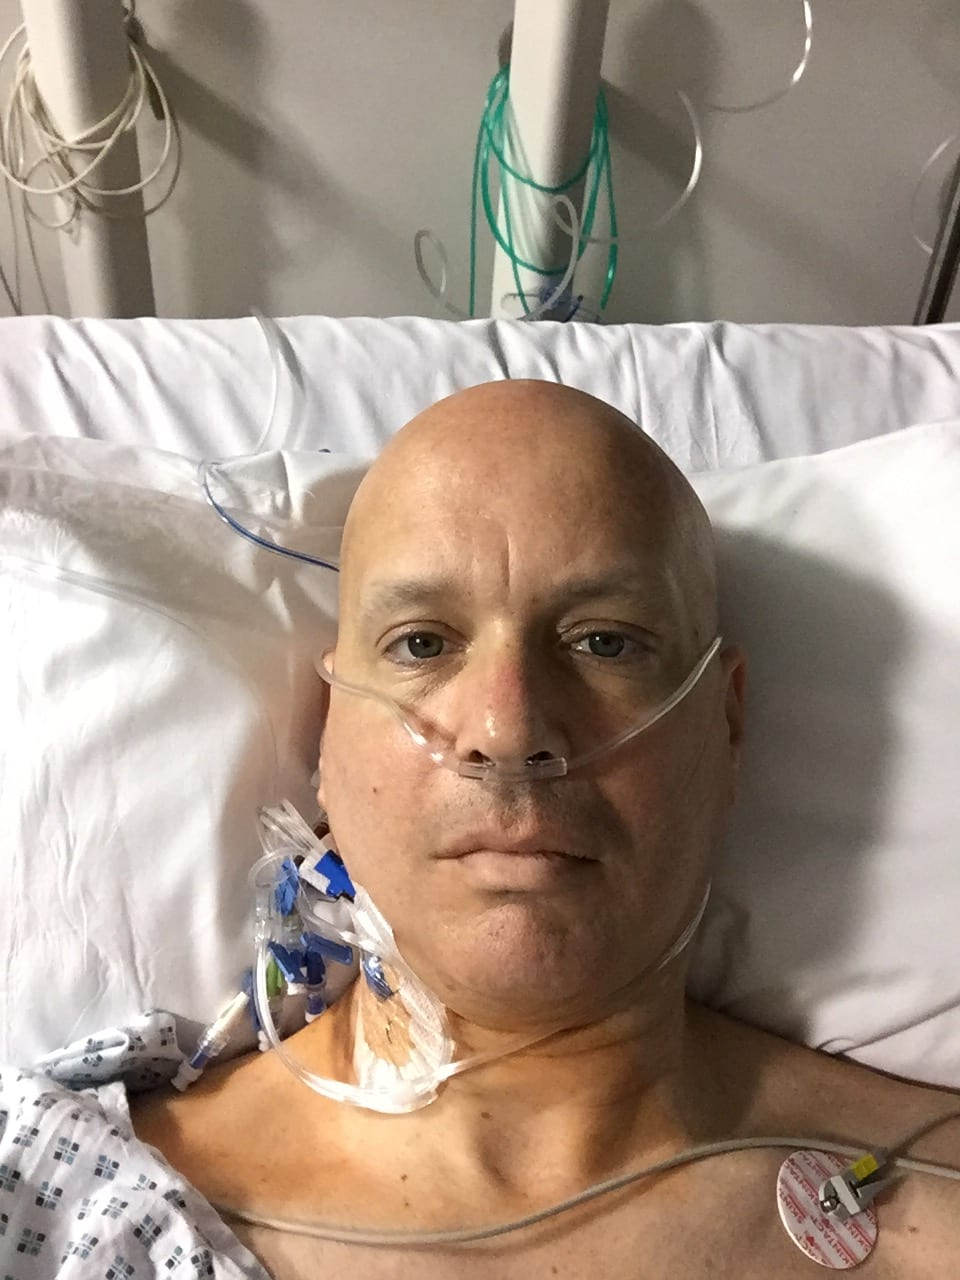 Image of Jonathan Acott in a hospital bed fighting one of his six diagnosed cancers. Read about his journey to run the world and how the Austin Marathon is next!